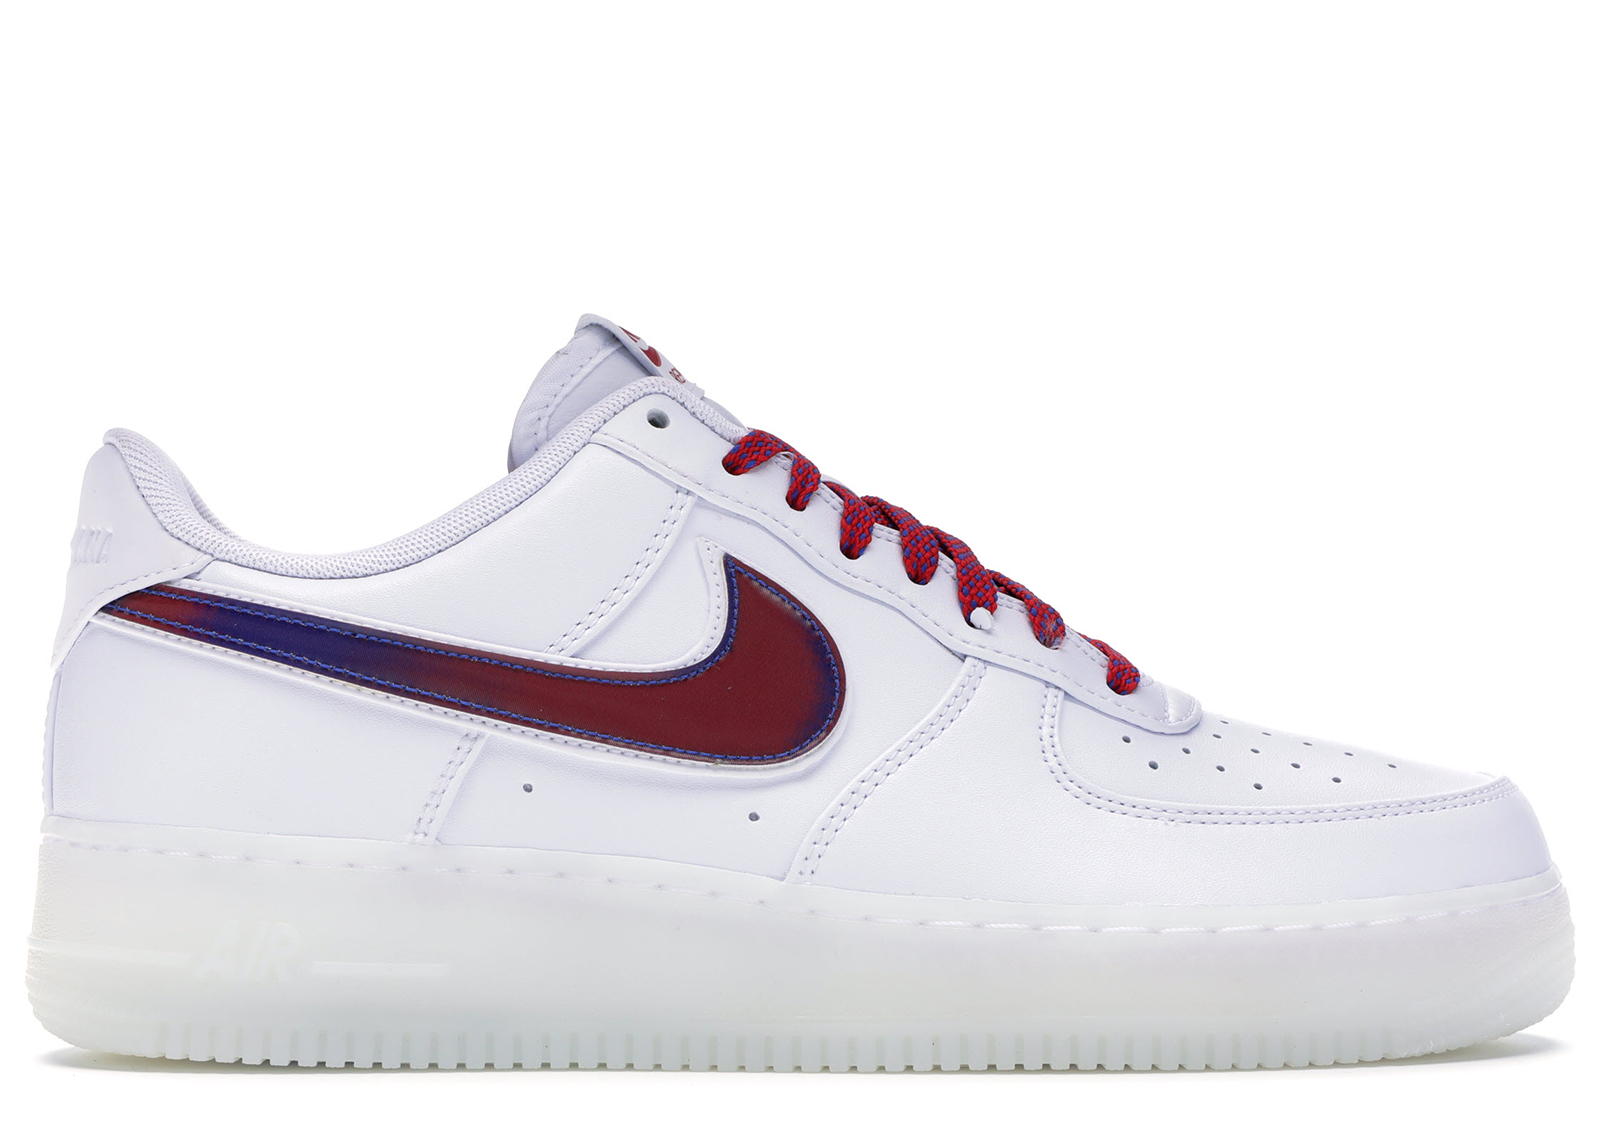 Nike Air Force 1 Low 'Dominican Republic' Release Date